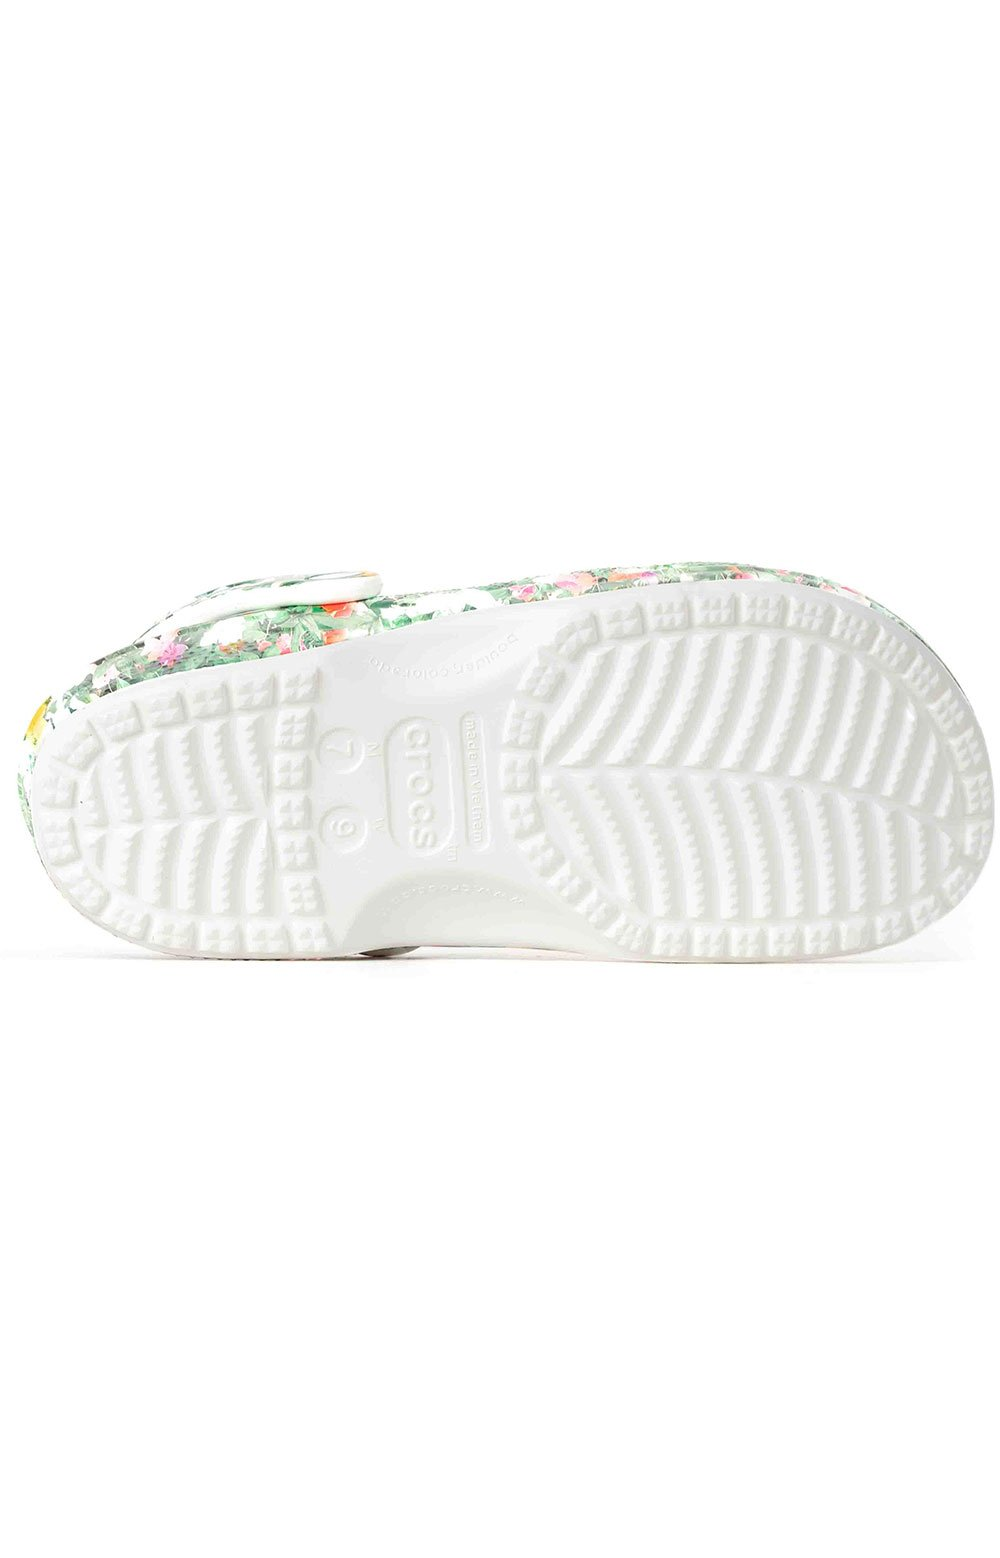 Classic Printed Floral Clogs - White/Multi 5